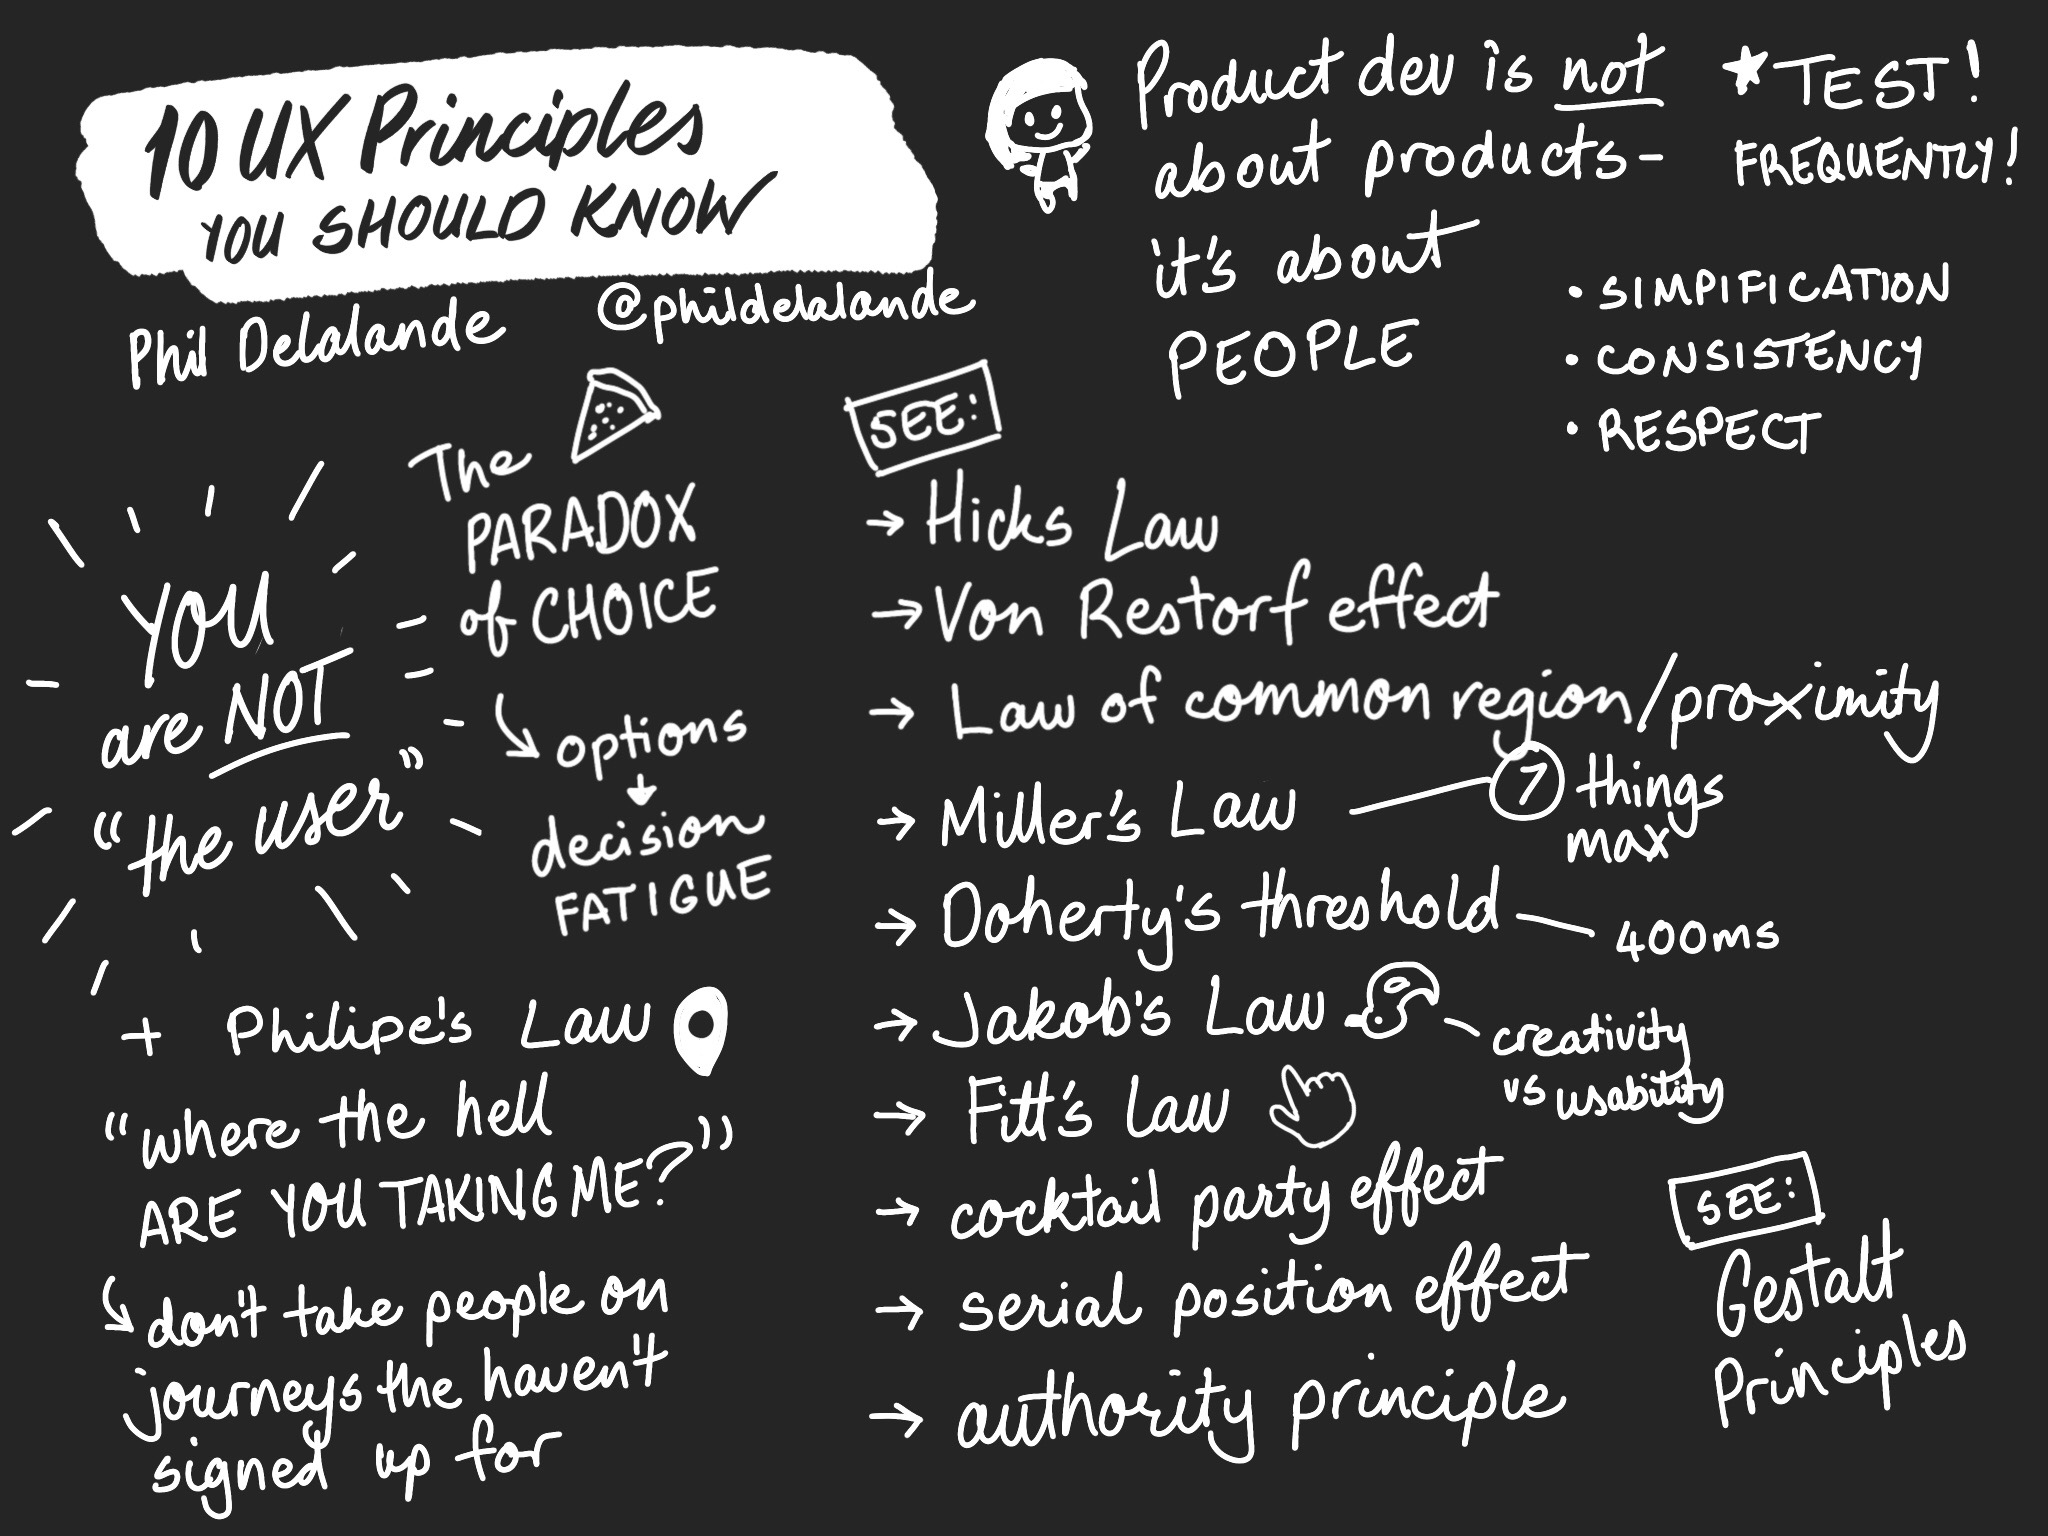 Sketchnote of 10 UX principles you should know